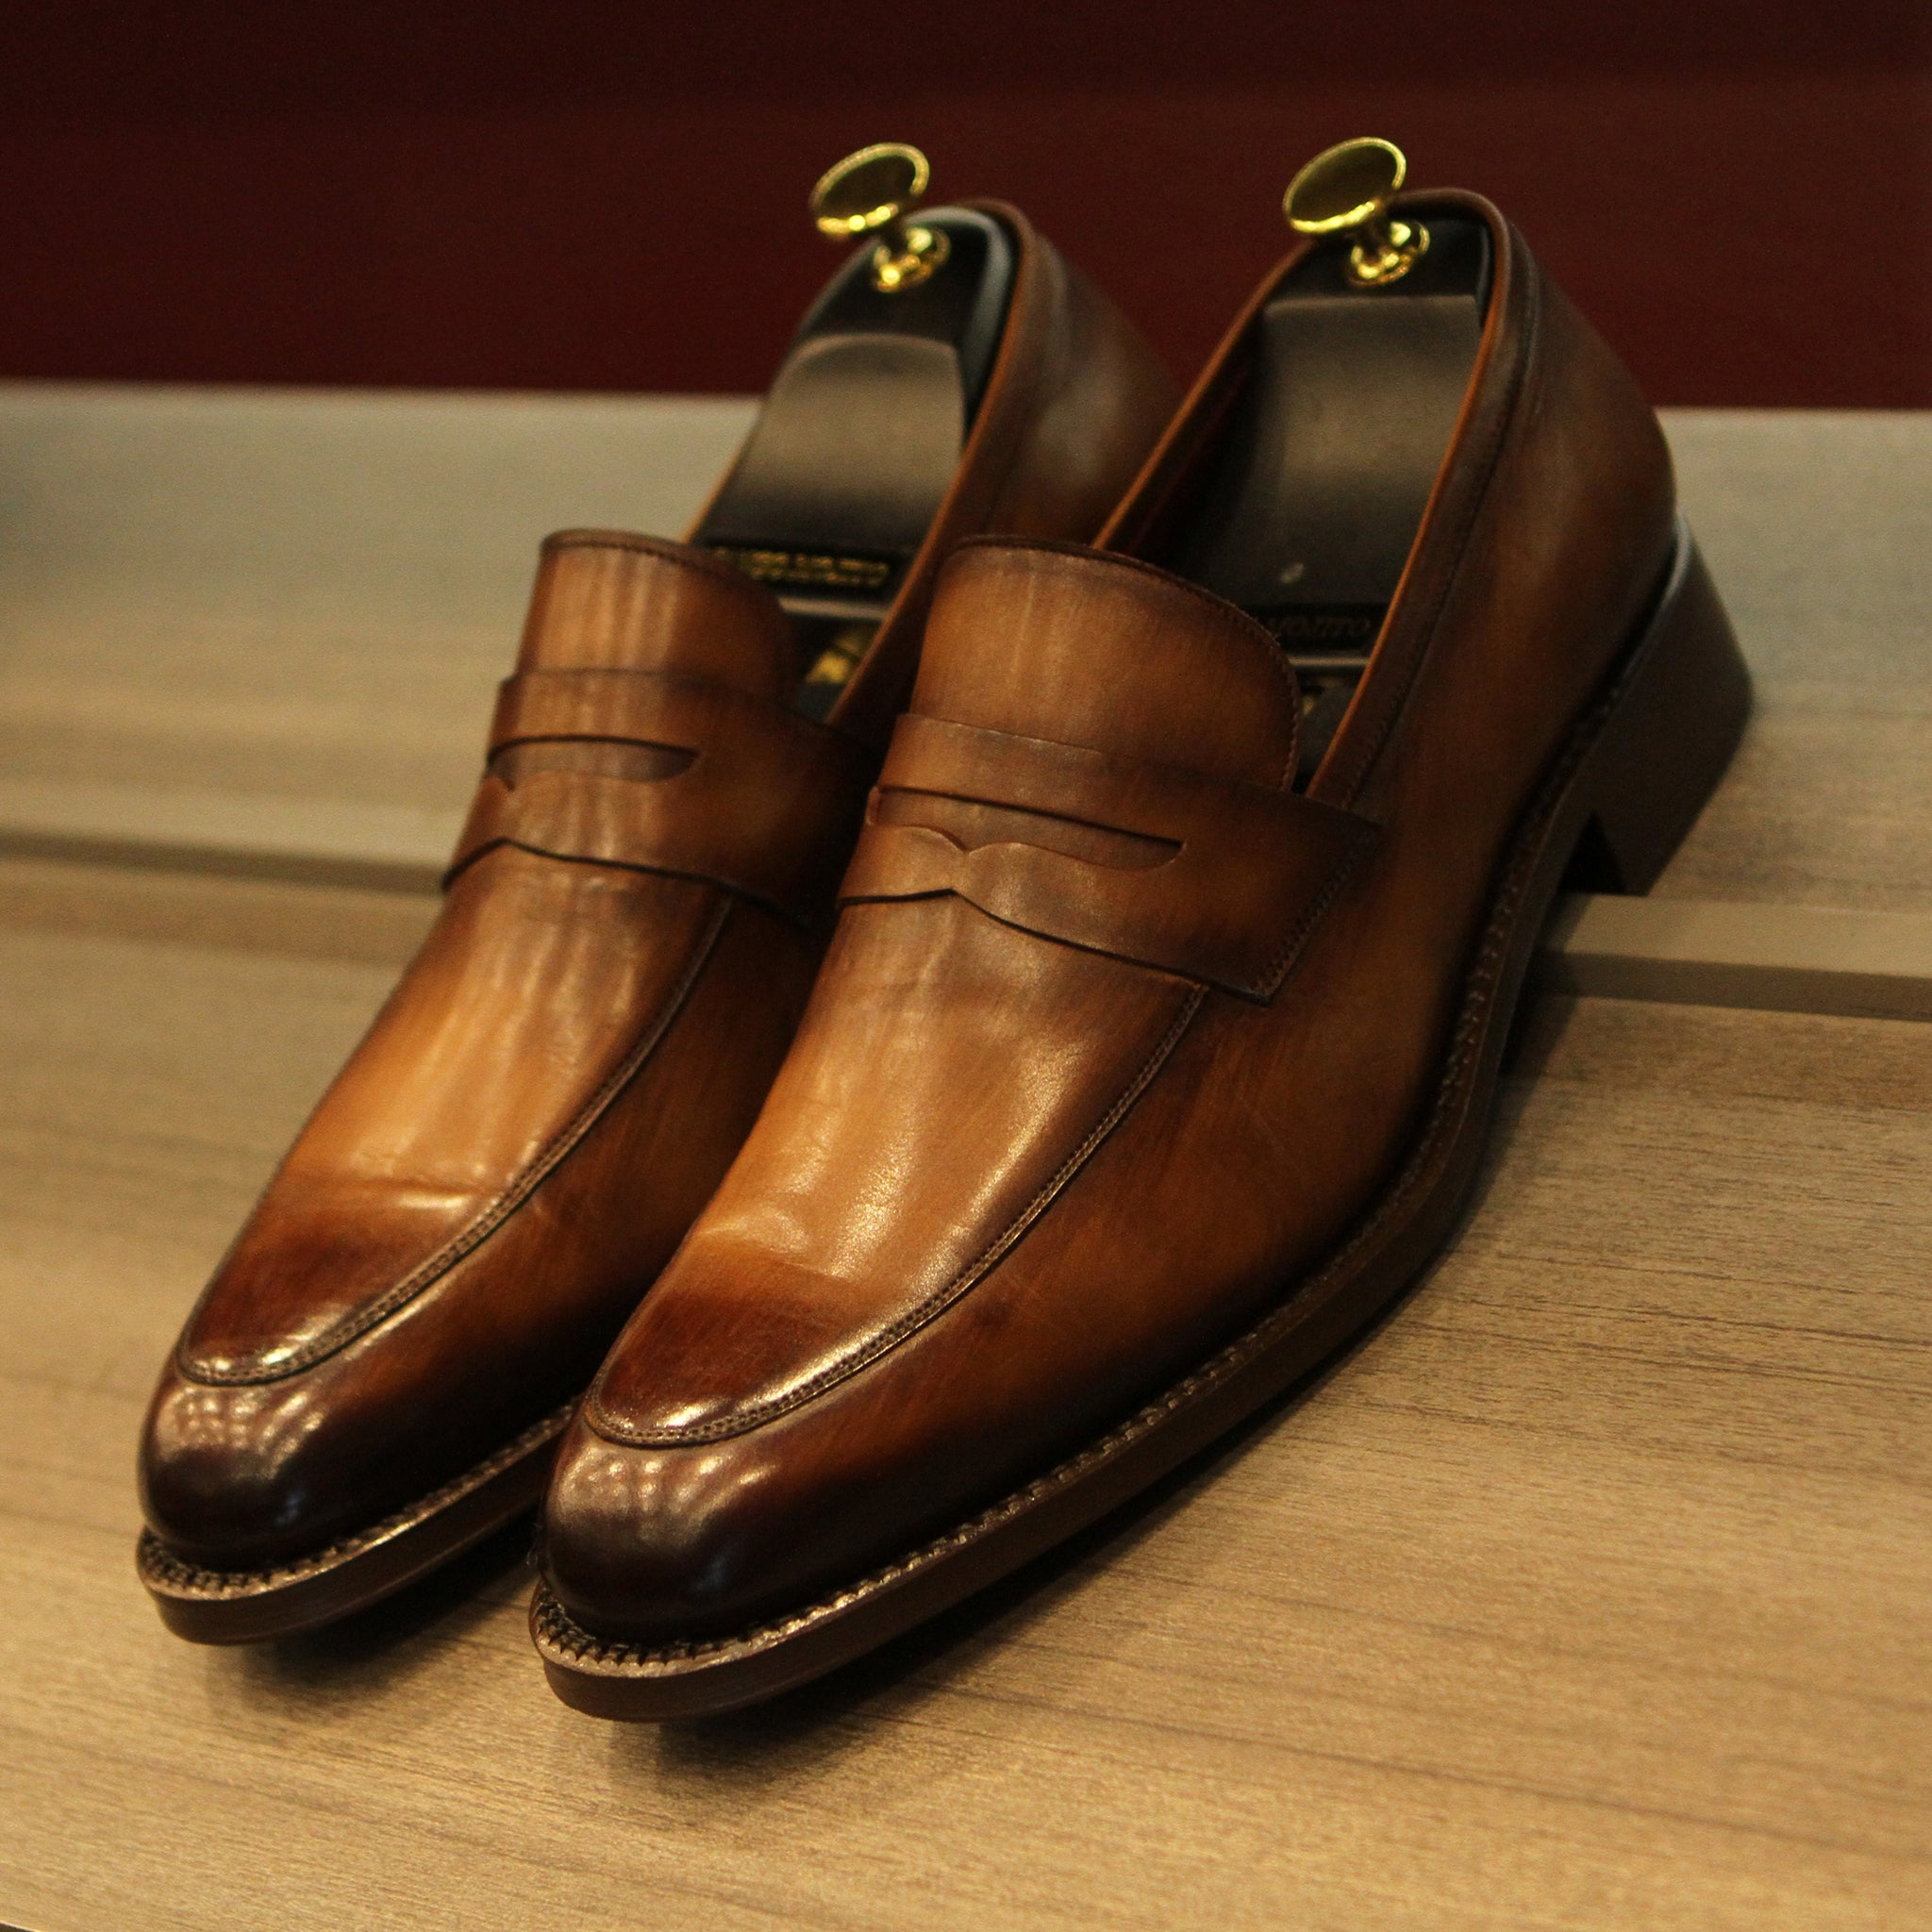 GYW Masterpiece Penny Loafer - Tobacco